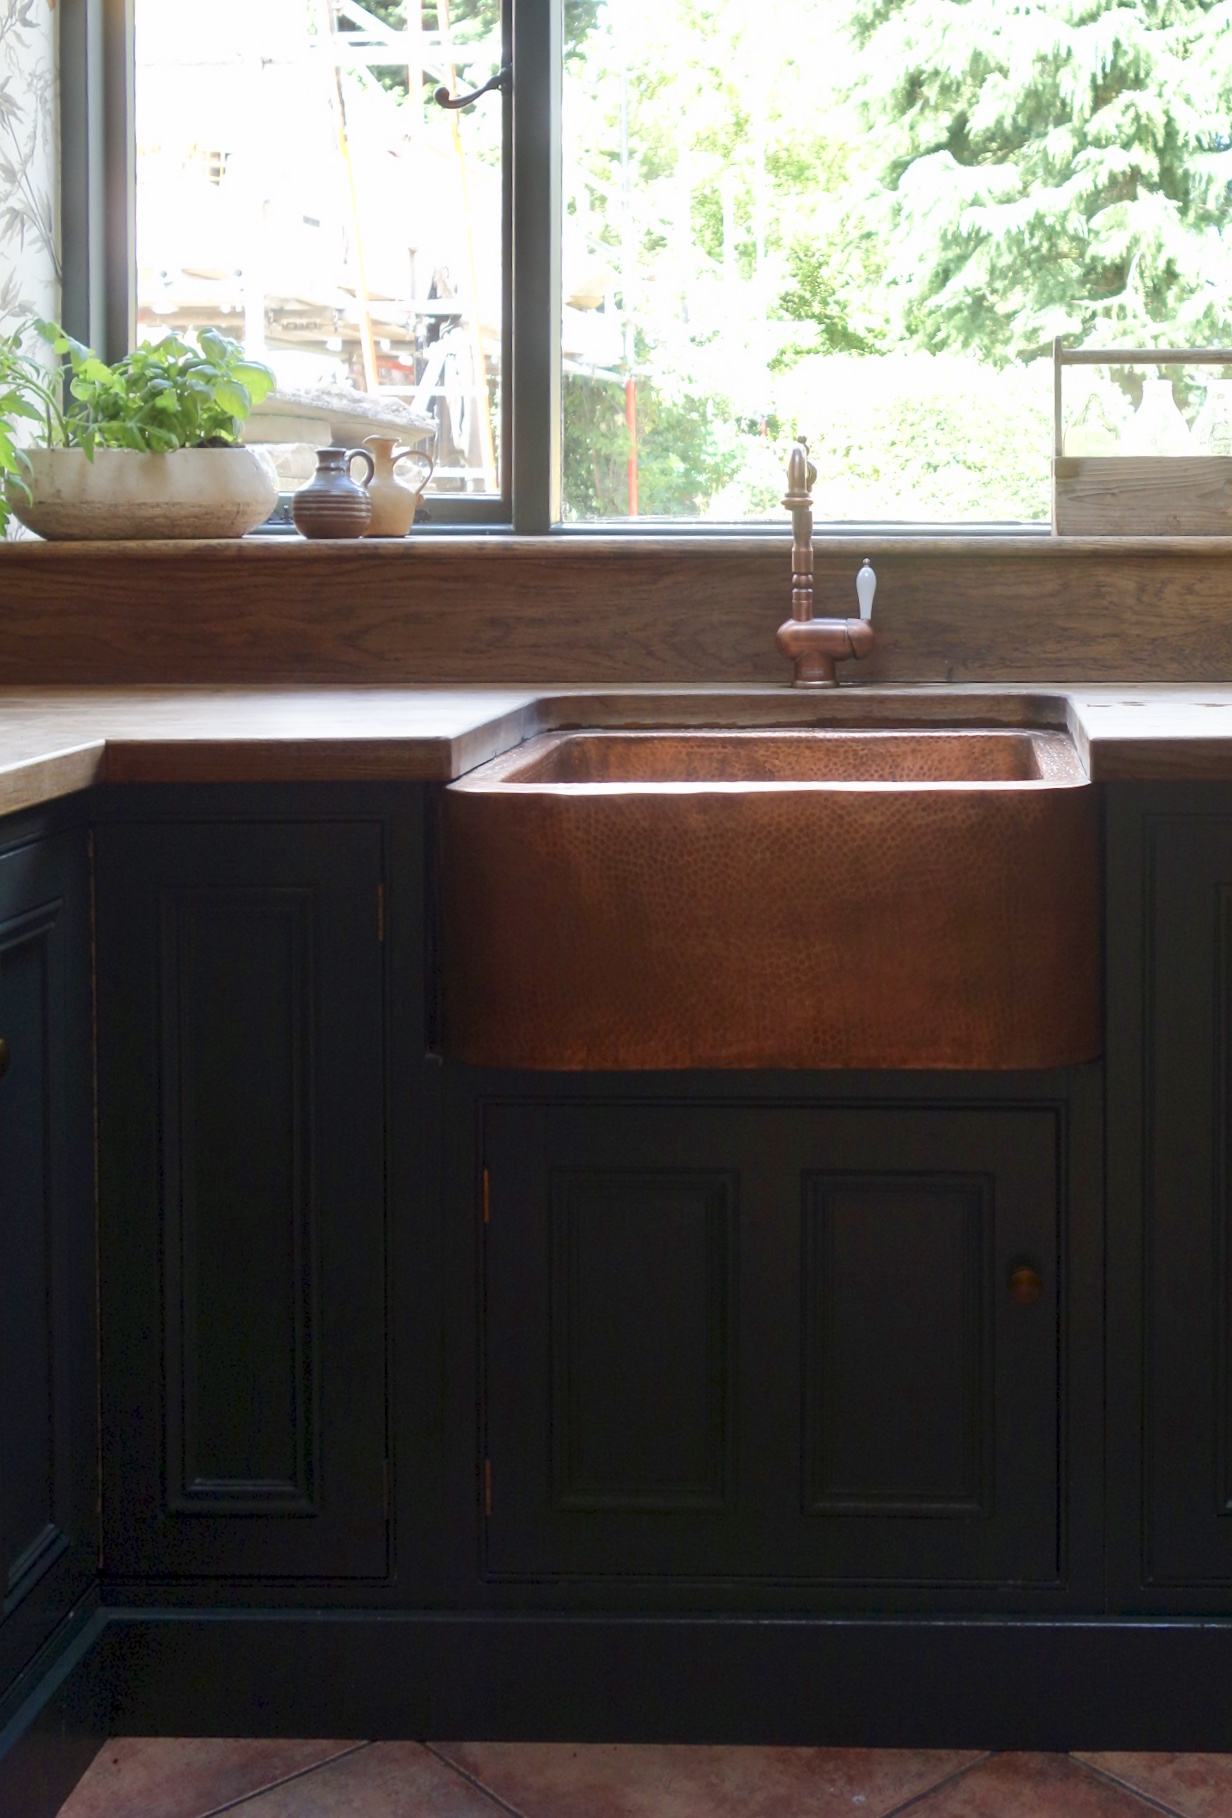 Copper sink